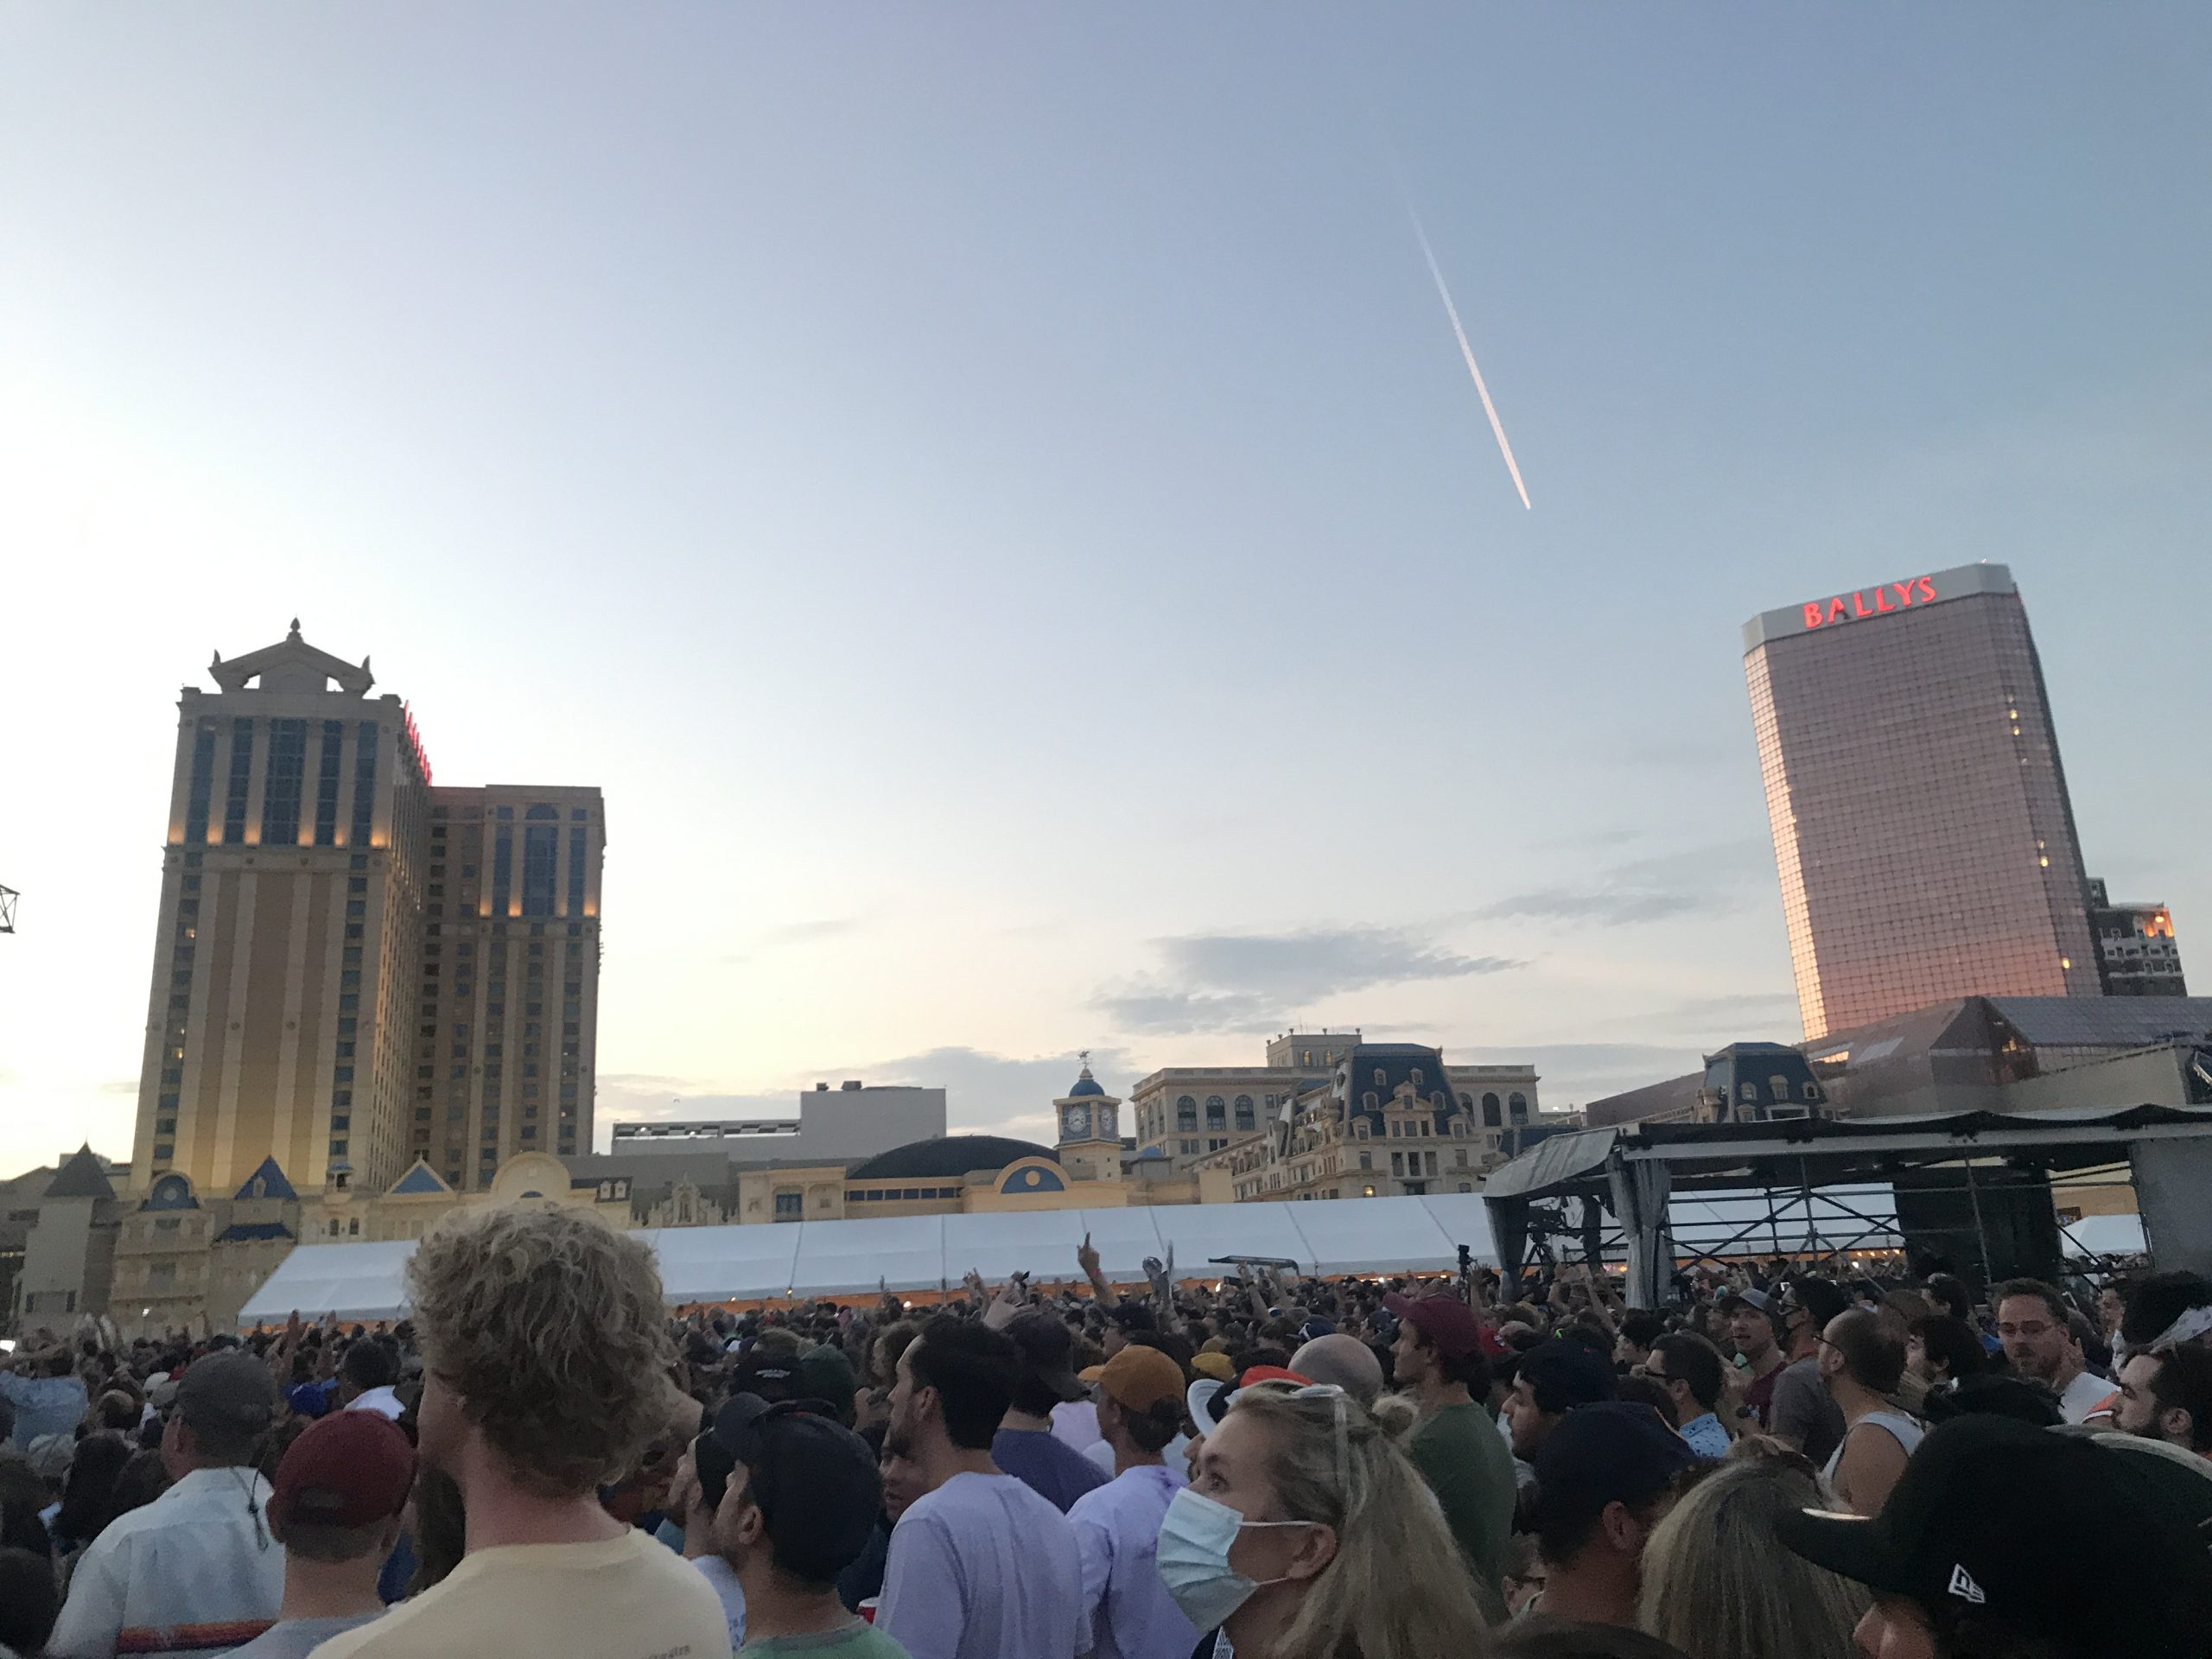 The crowd for Phish Sunday, Aug. 15, 2021 on the beach in Atlantic City, New Jersey (Shaun R. Smith/The High Note).